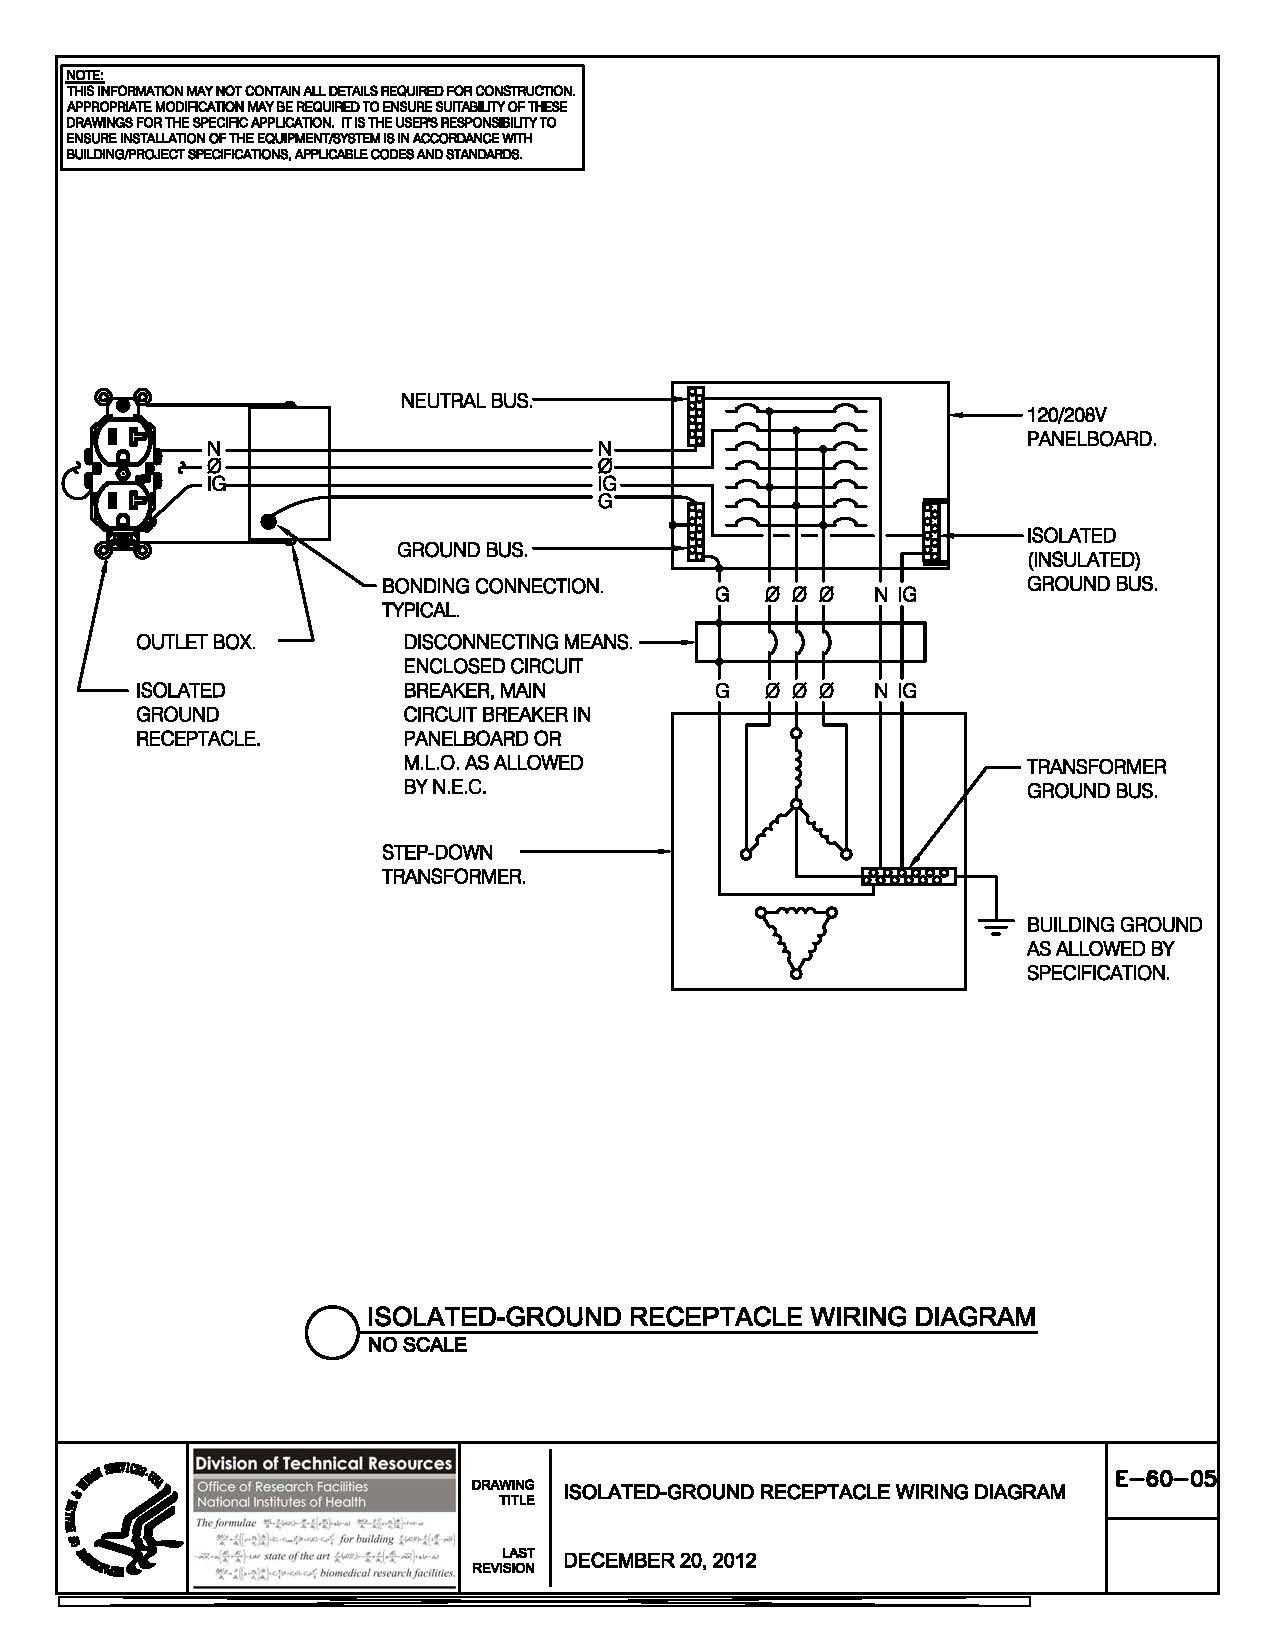 electrical panel board diagram pdf perfect diagram plc panel best duplex pump control panel [ 1275 x 1650 Pixel ]